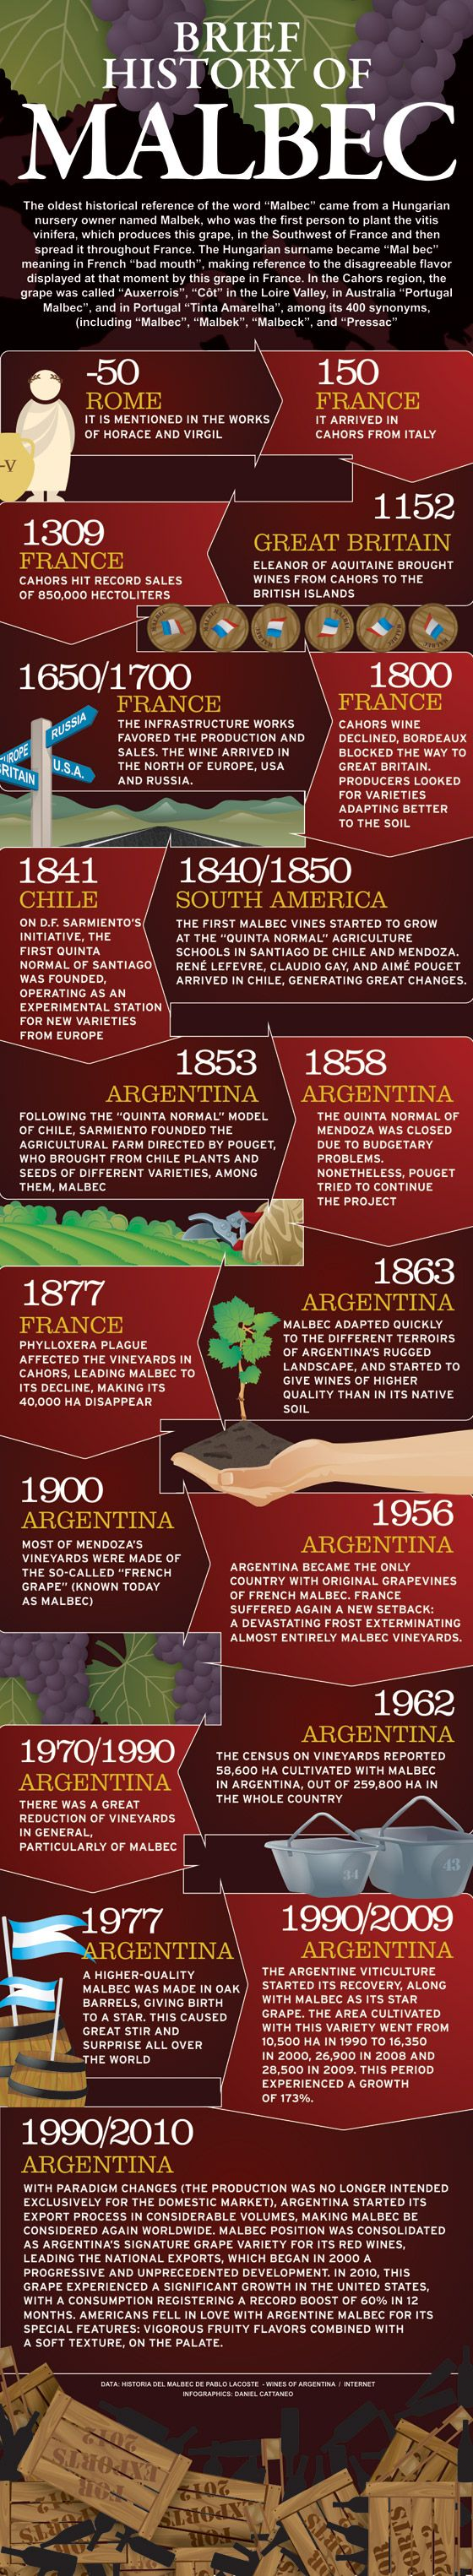 Brief History Of Malbec Malbec Wine Facts Wine Recipes